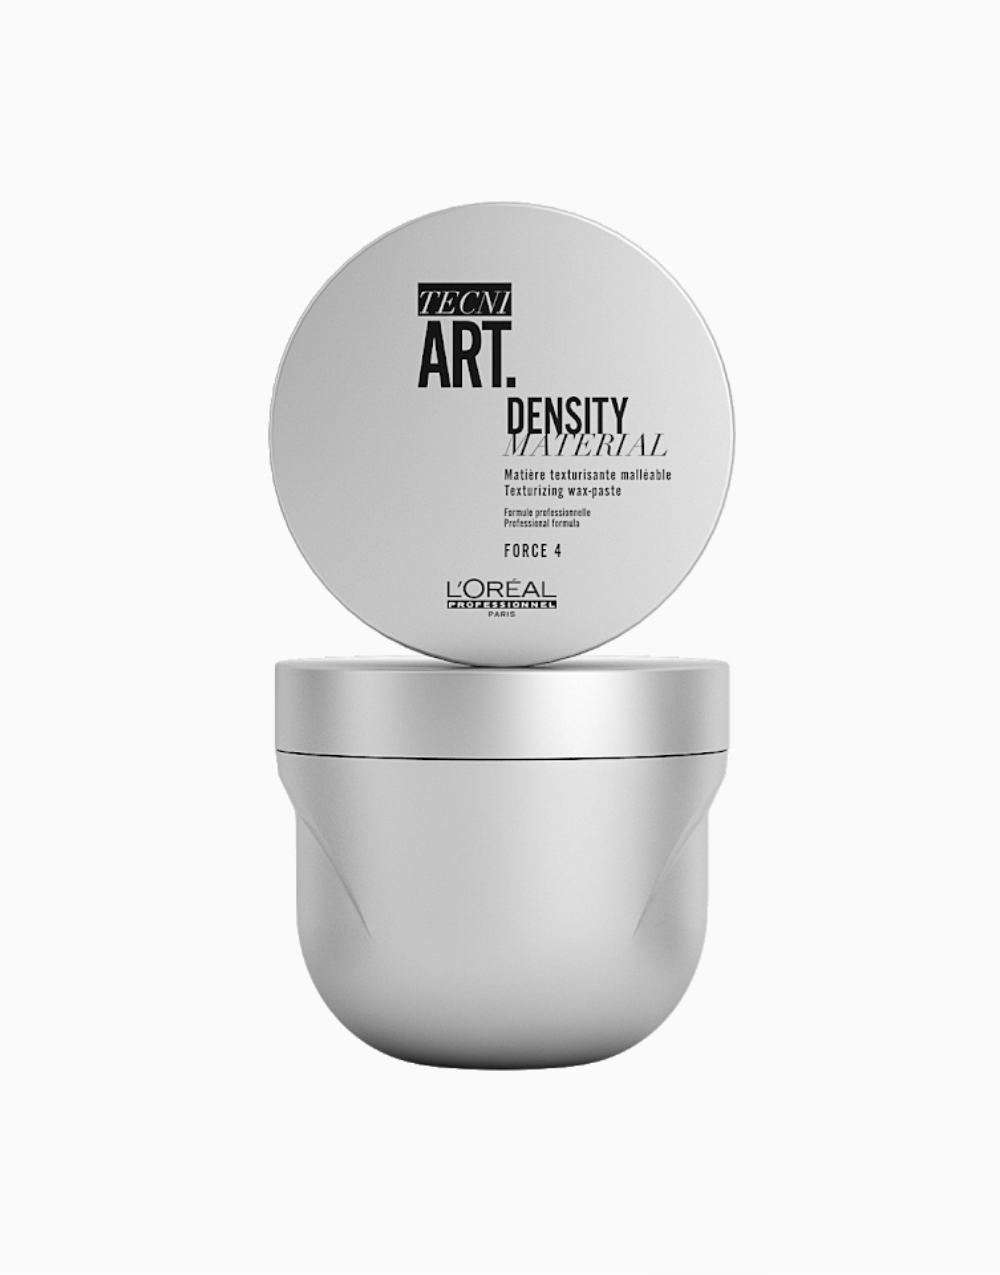 L'Oreal Tecni.Art Density Material Texturizing Wax Paste by L'Oreal Professionnel